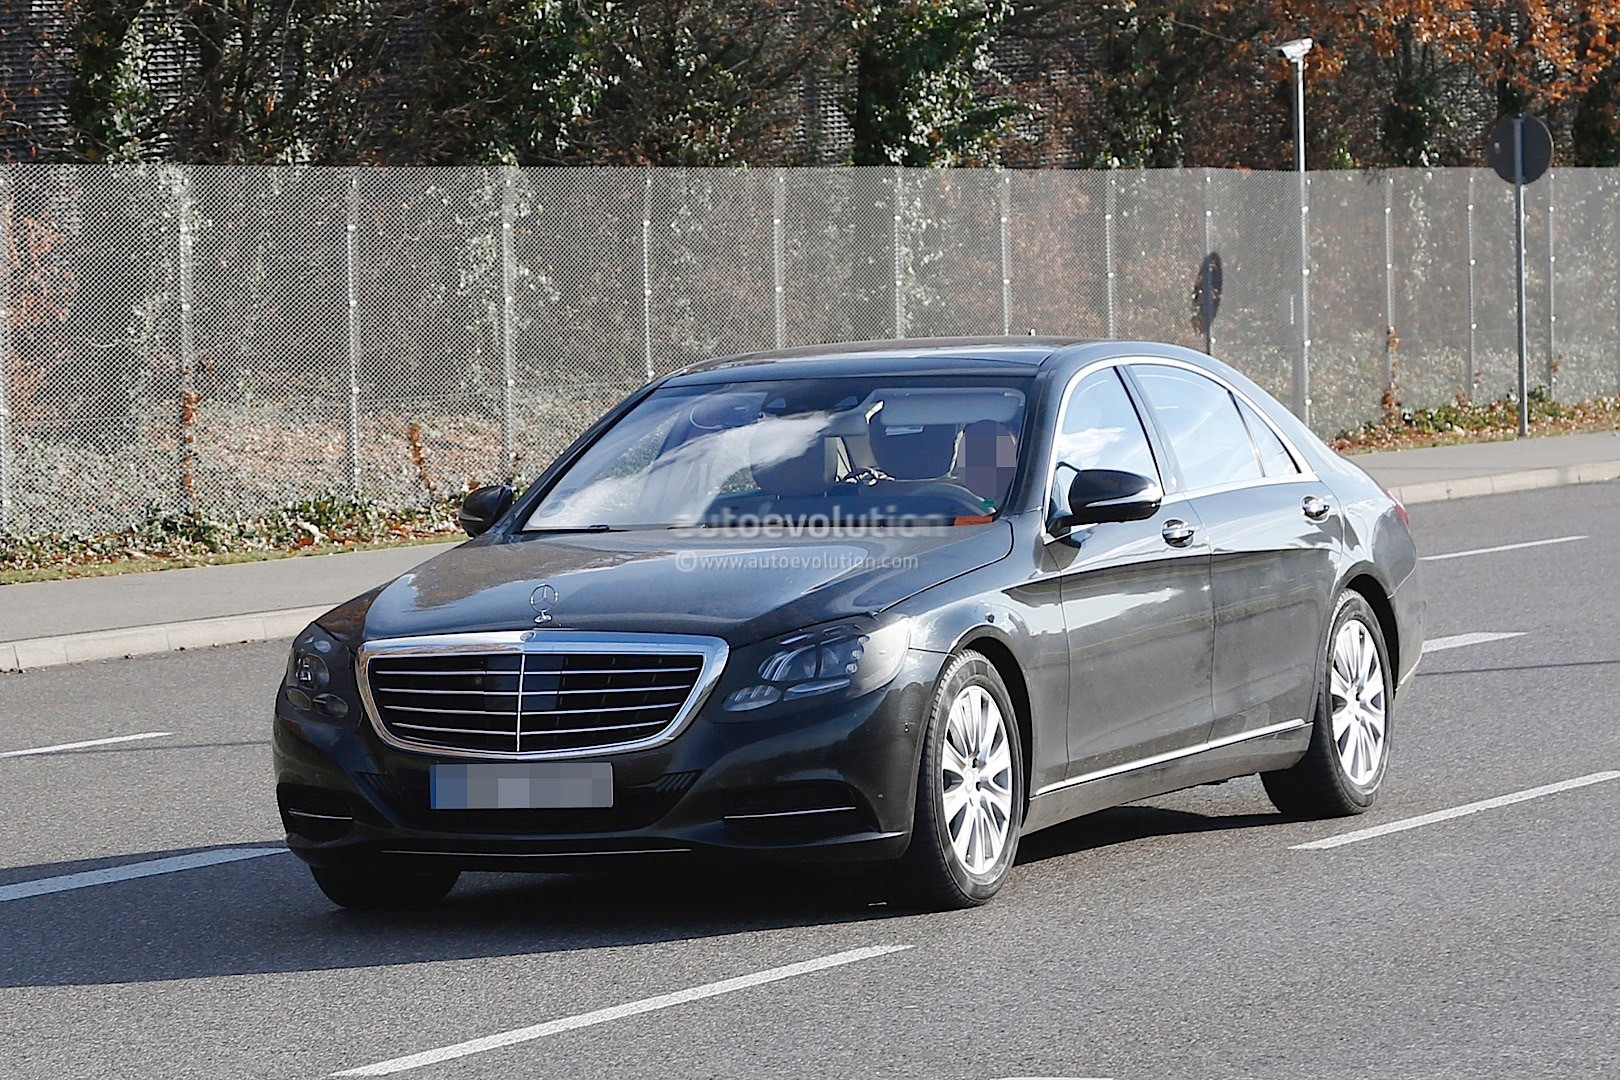 2018 mercedes benz s class facelift spied for the first time showing minor changes autoevolution. Black Bedroom Furniture Sets. Home Design Ideas